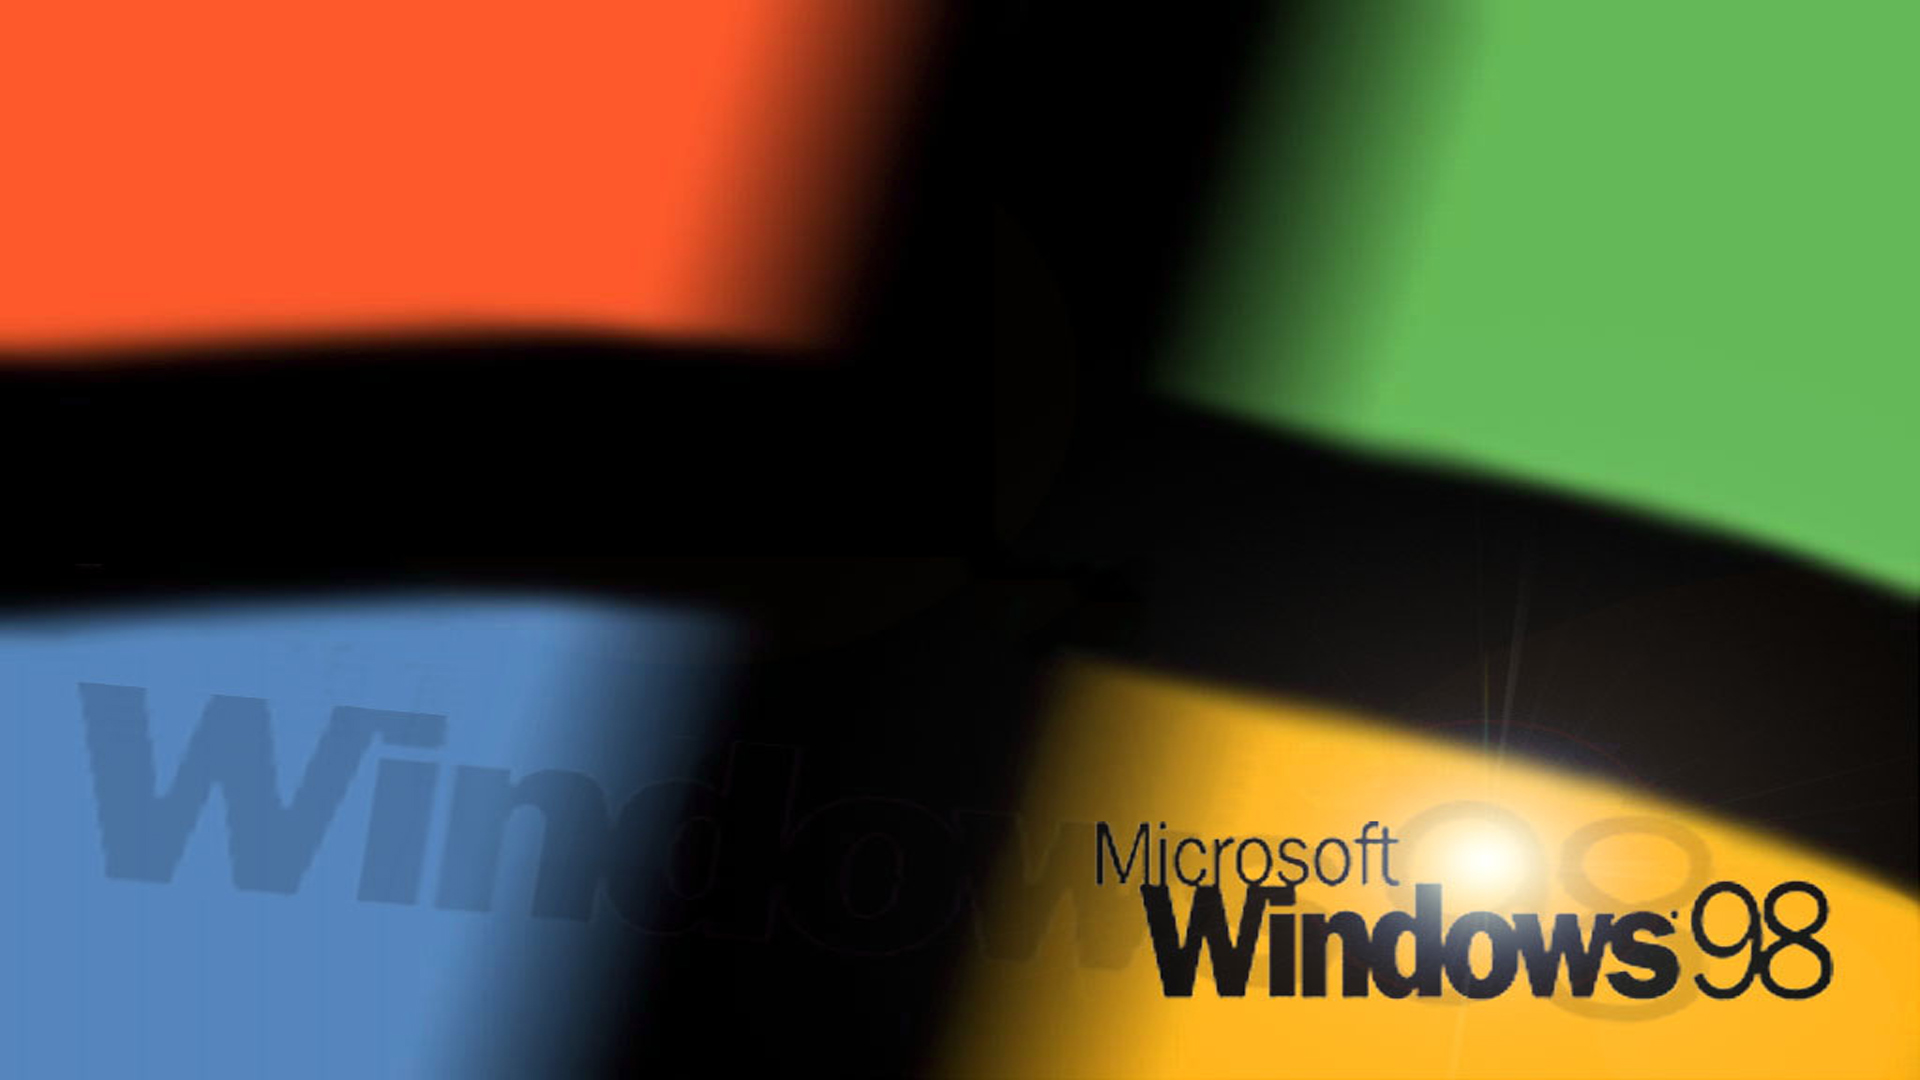 windows 98 for widescreen people by thebc on deviantart